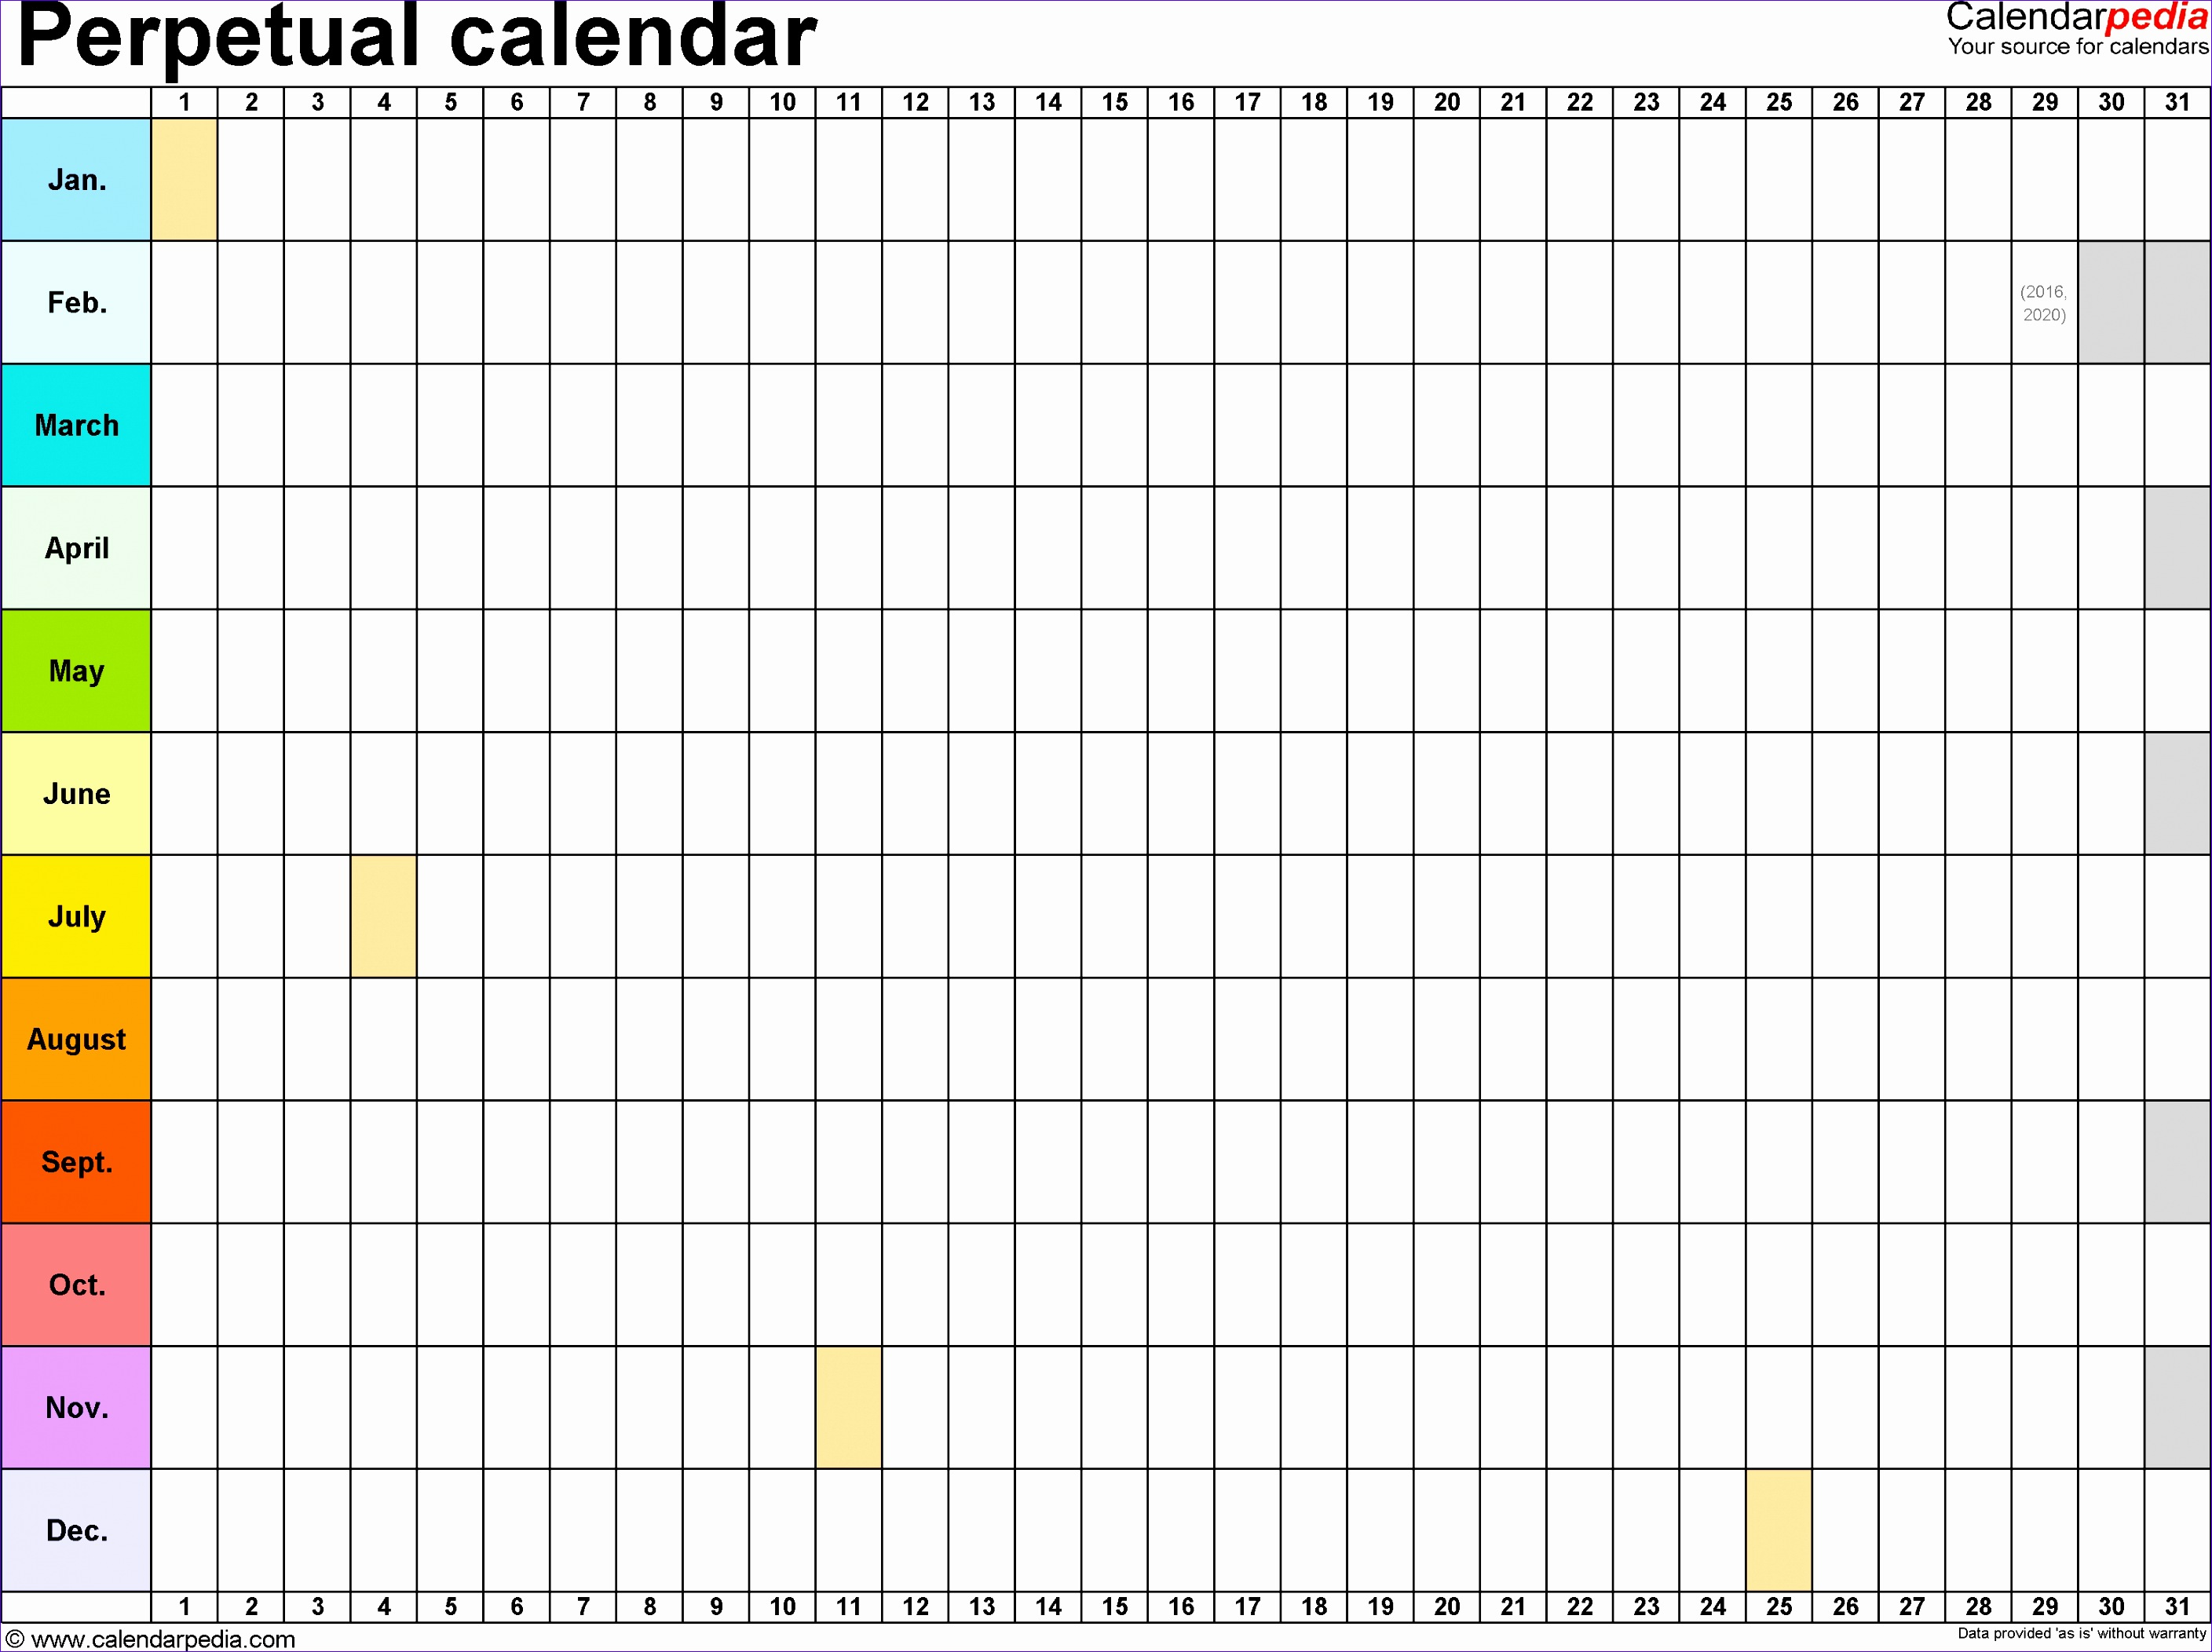 perpetual calendars 7 free printable excel templates pictures 4